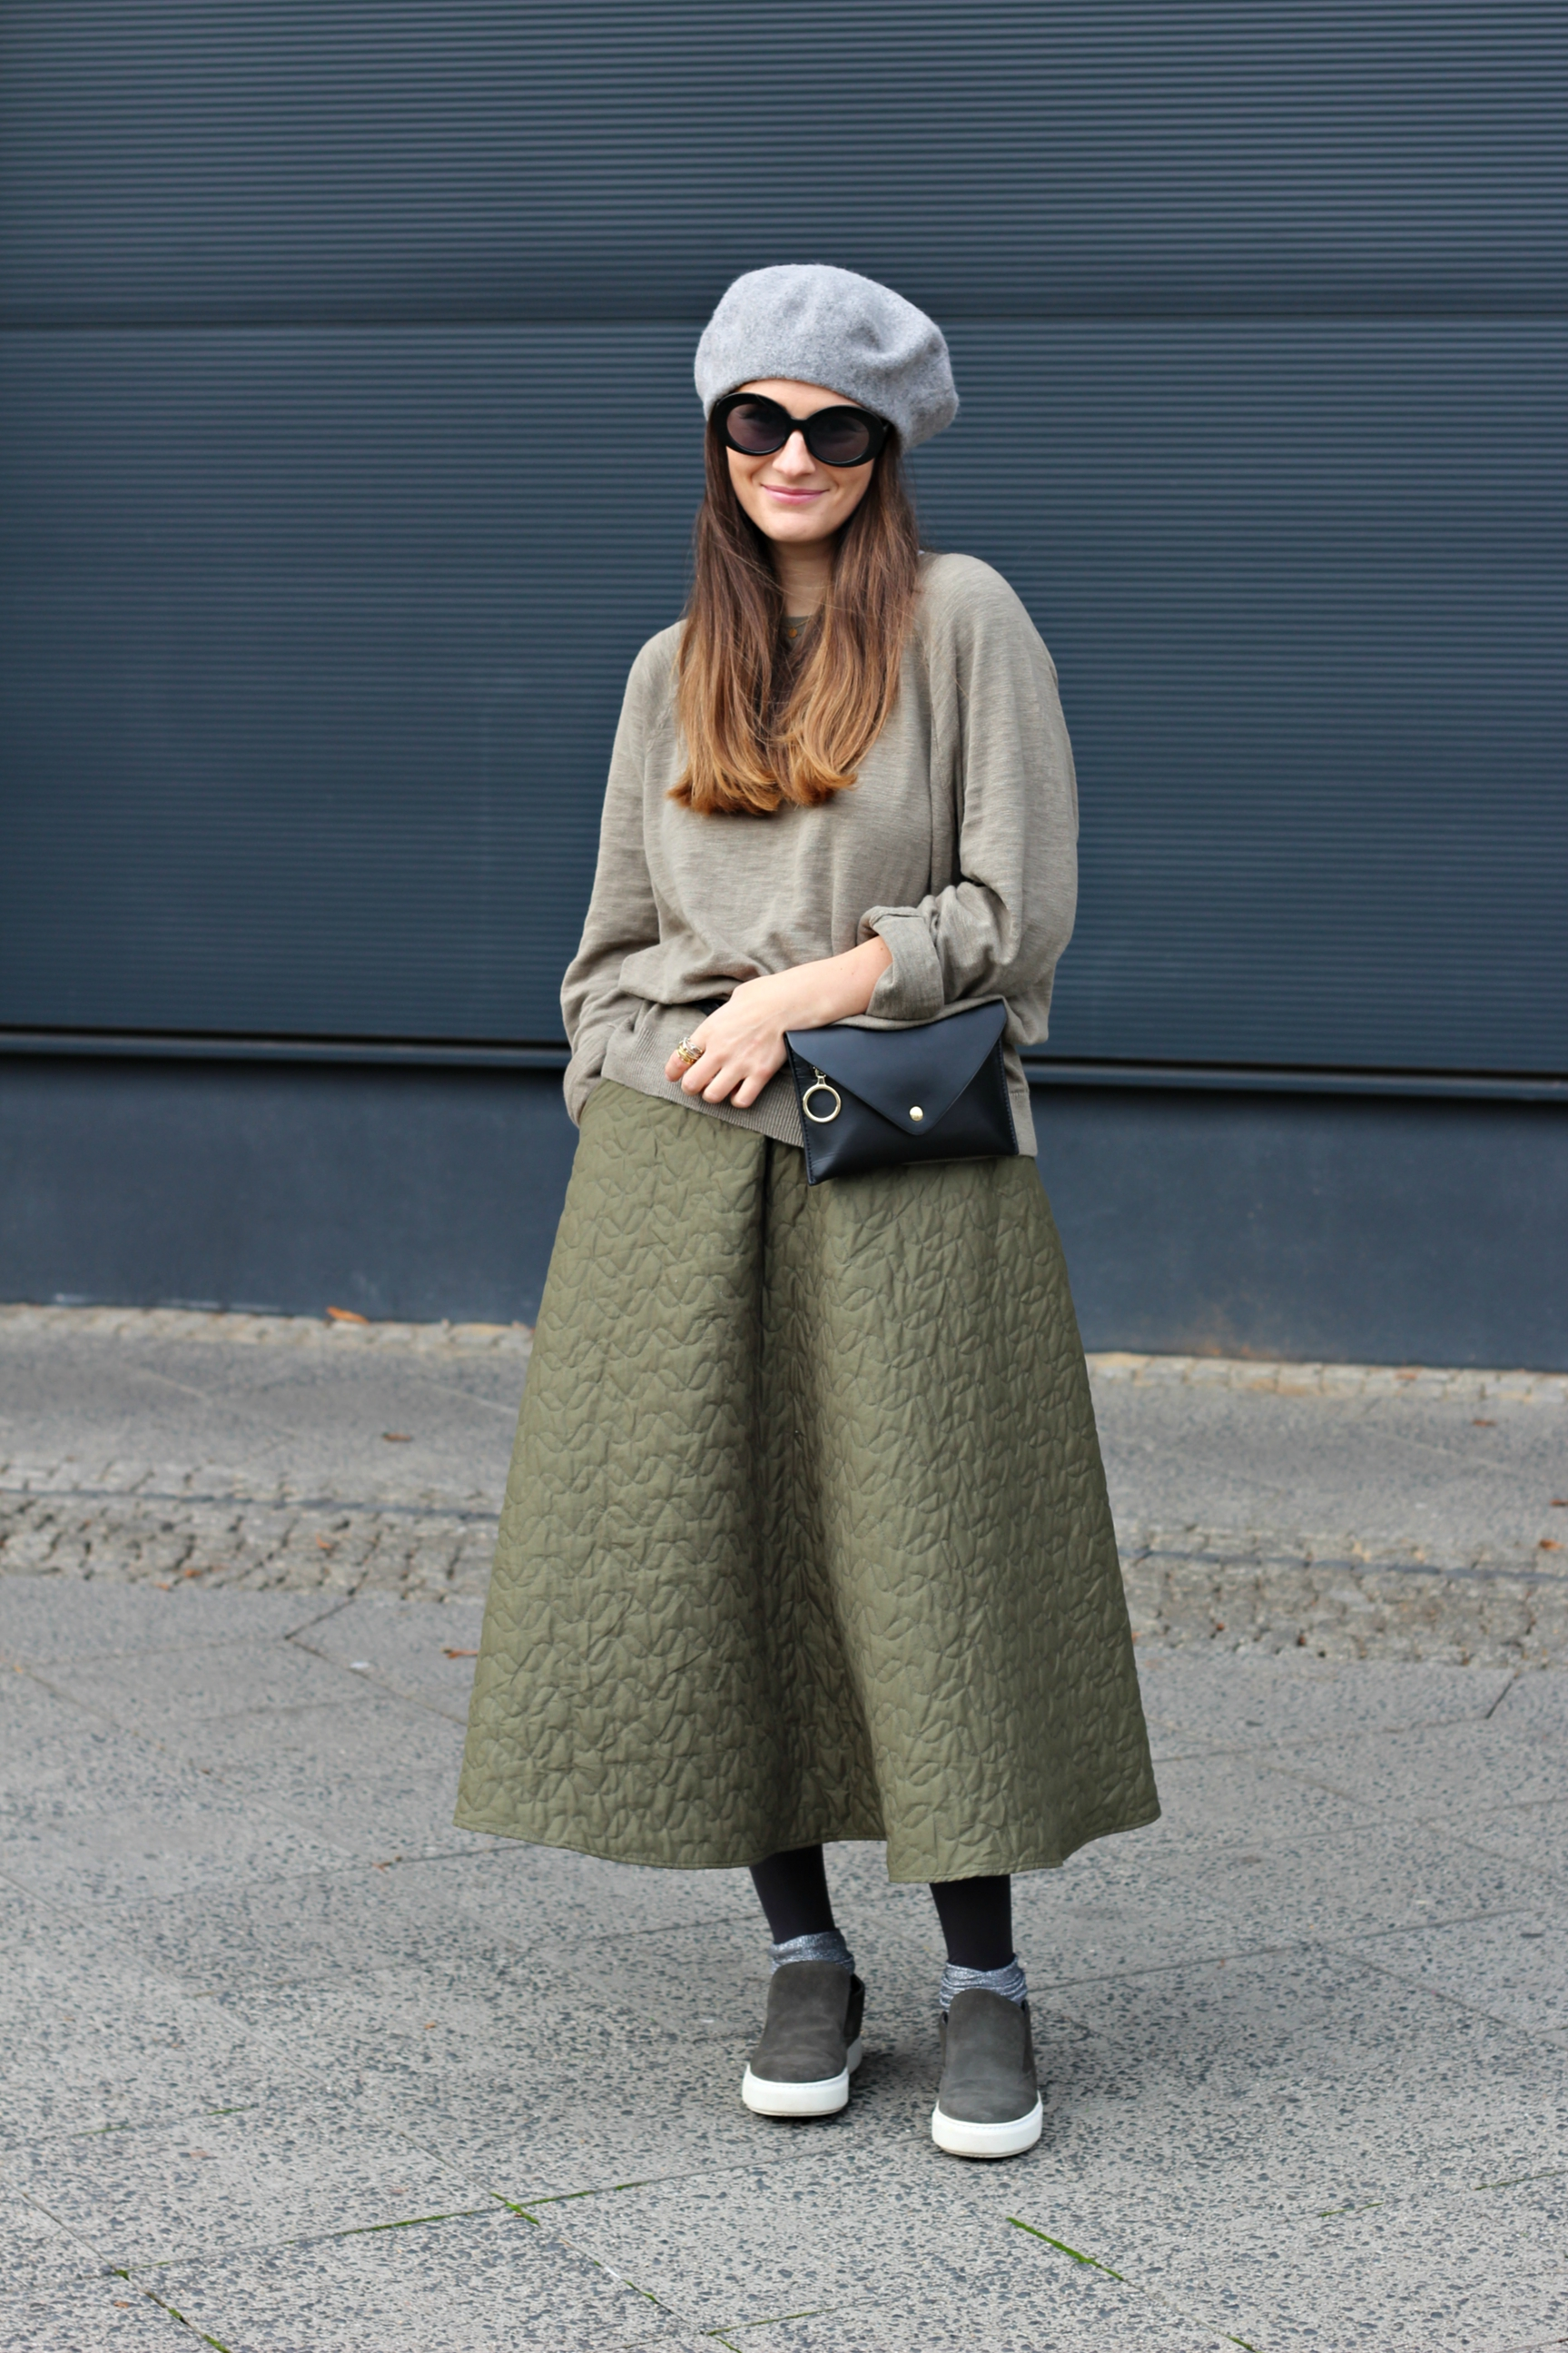 annaporter-green-skirt-uniqlo-shabbiesamsterdam-belt-bag